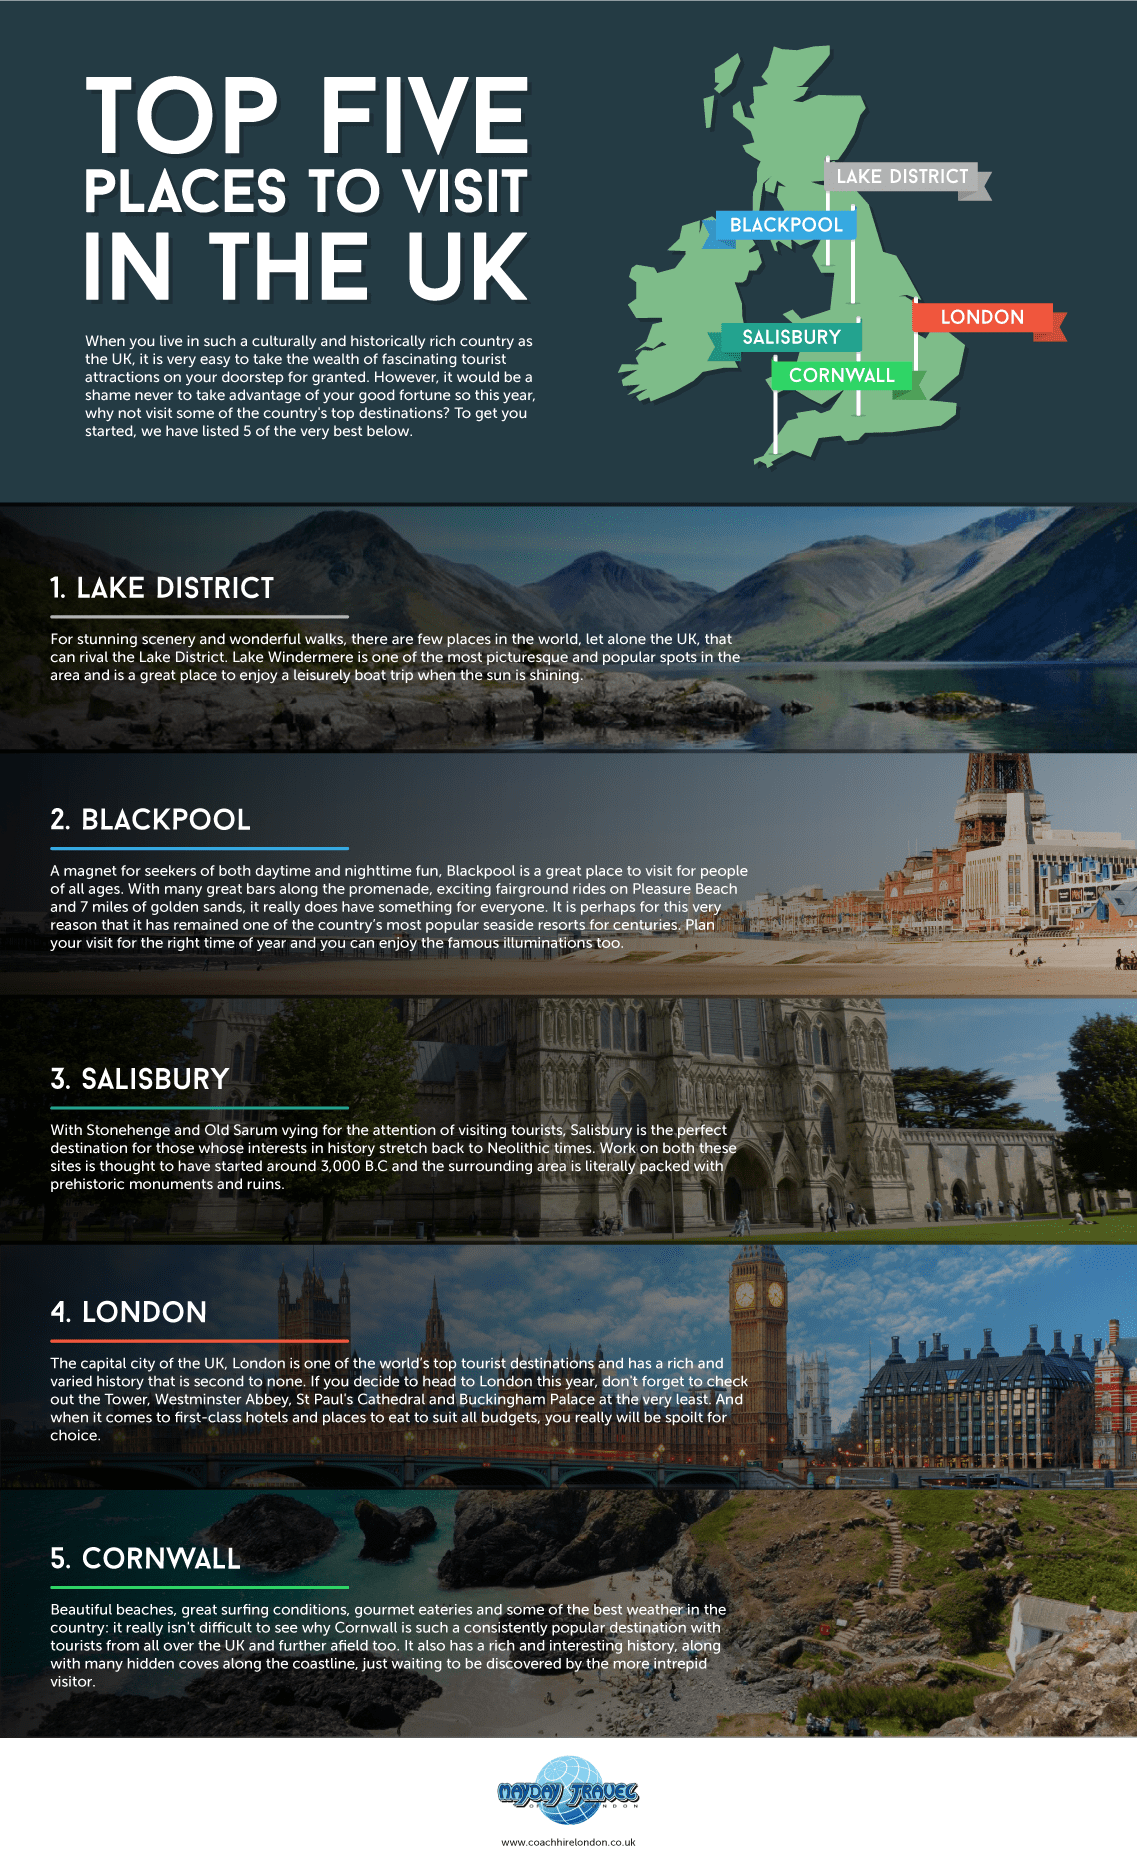 Top-places-to-visit-in-the-uk